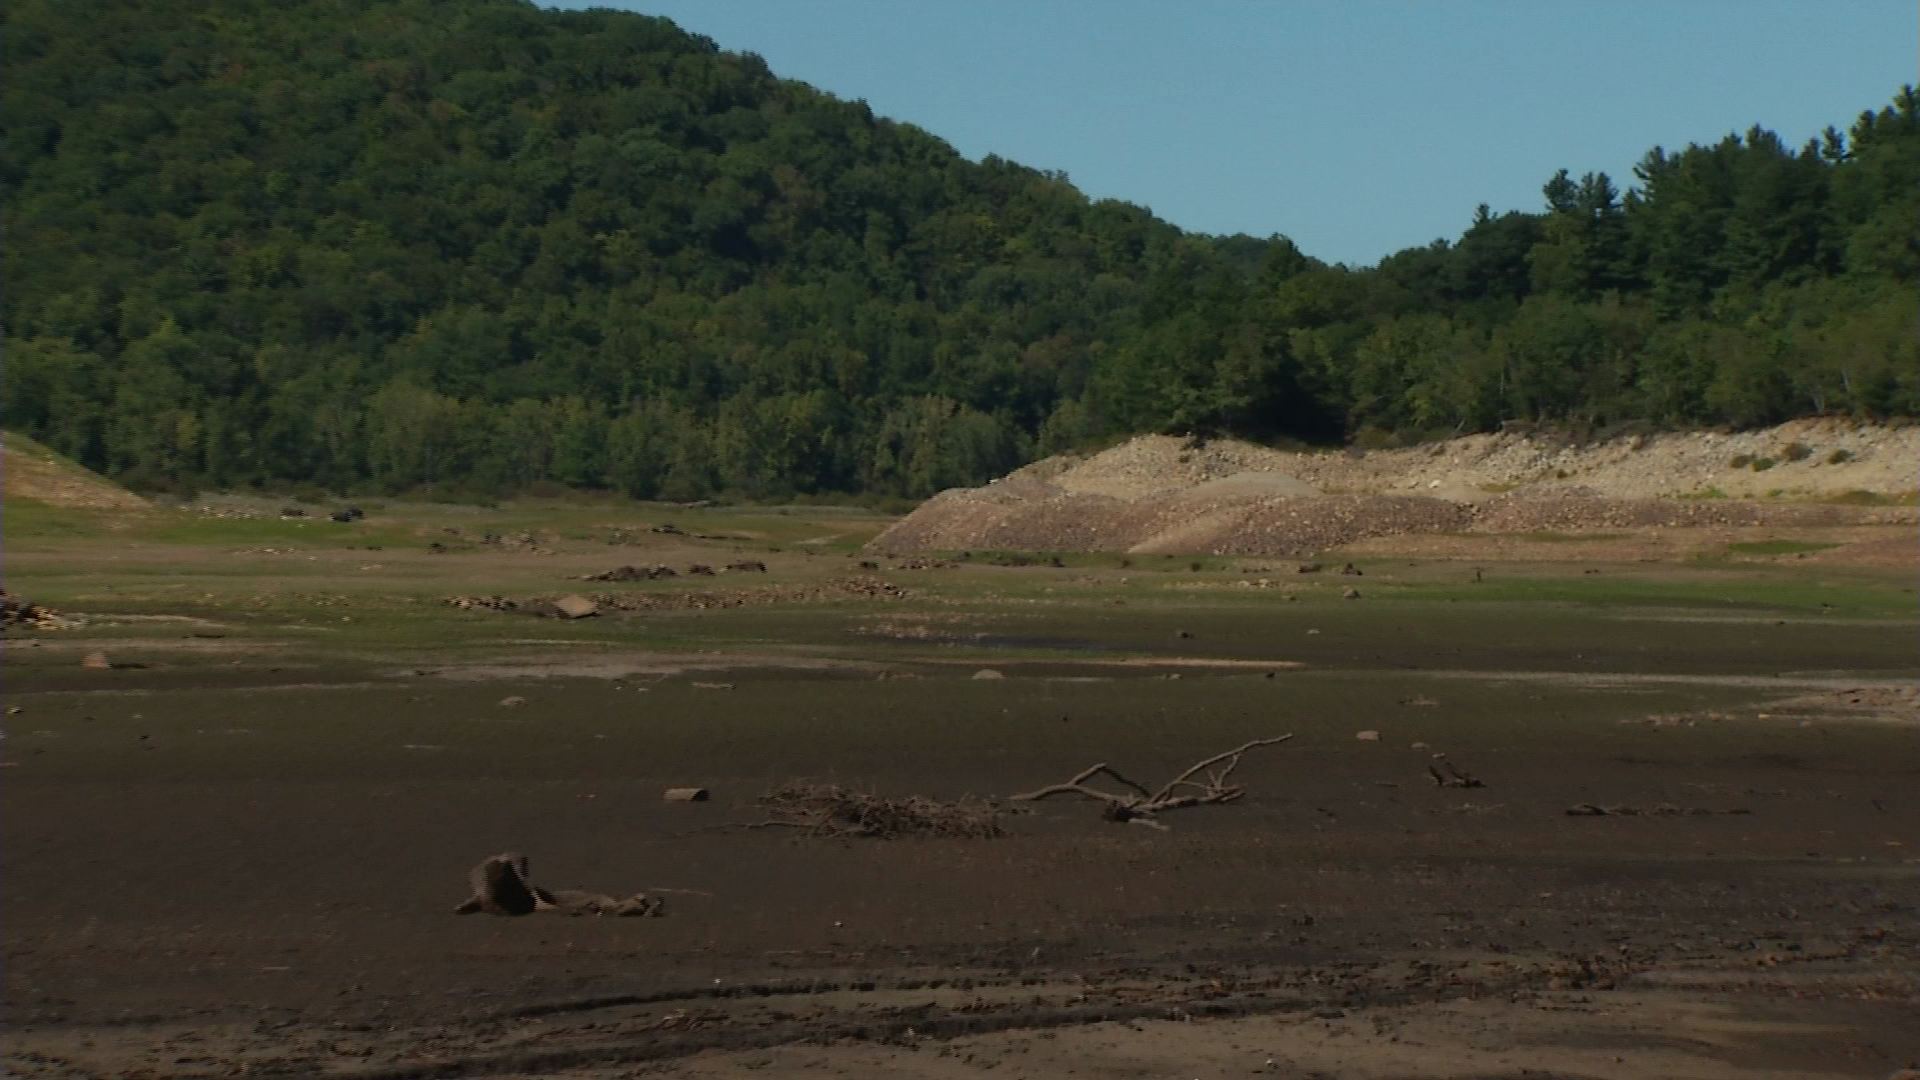 Mud is visible on the floor of the Colebrook River Lake in Colebrook, where the drought's impact is easily visible.